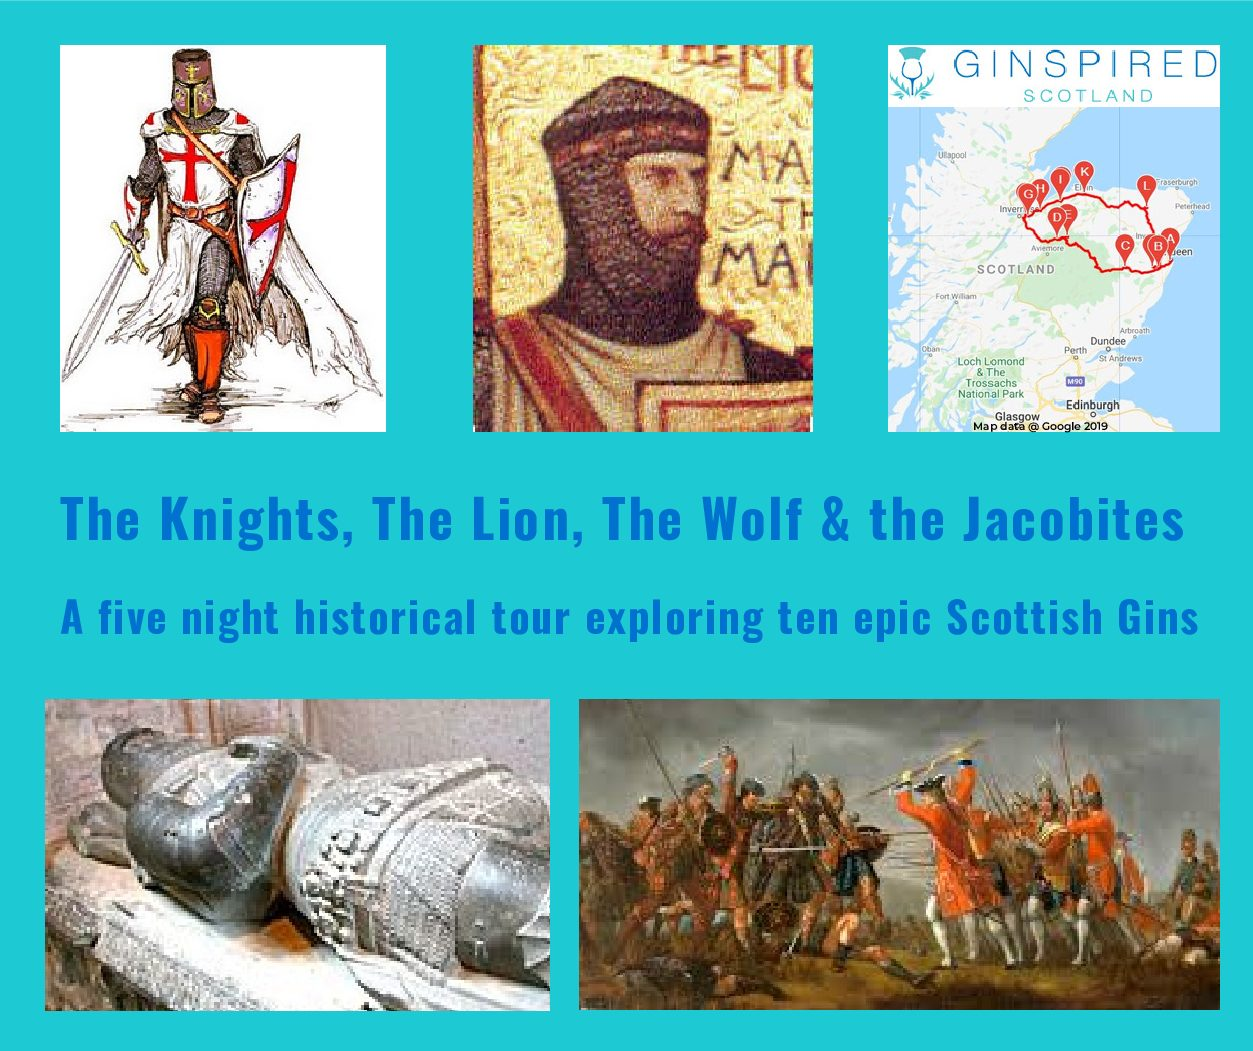 Historic Tour of North East Scotland with Scottish Gins. Knights Templar, Jacobites, Culloden, Wolf of Badenoch